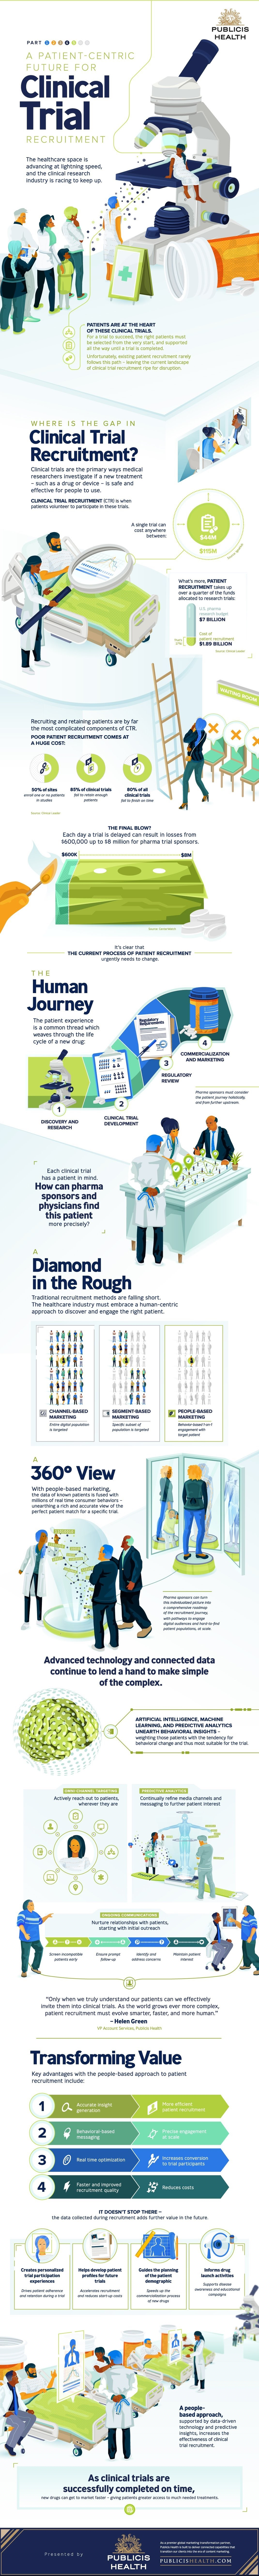 A Patient-Centric Future For Clinical Trial Recruitment #infographic